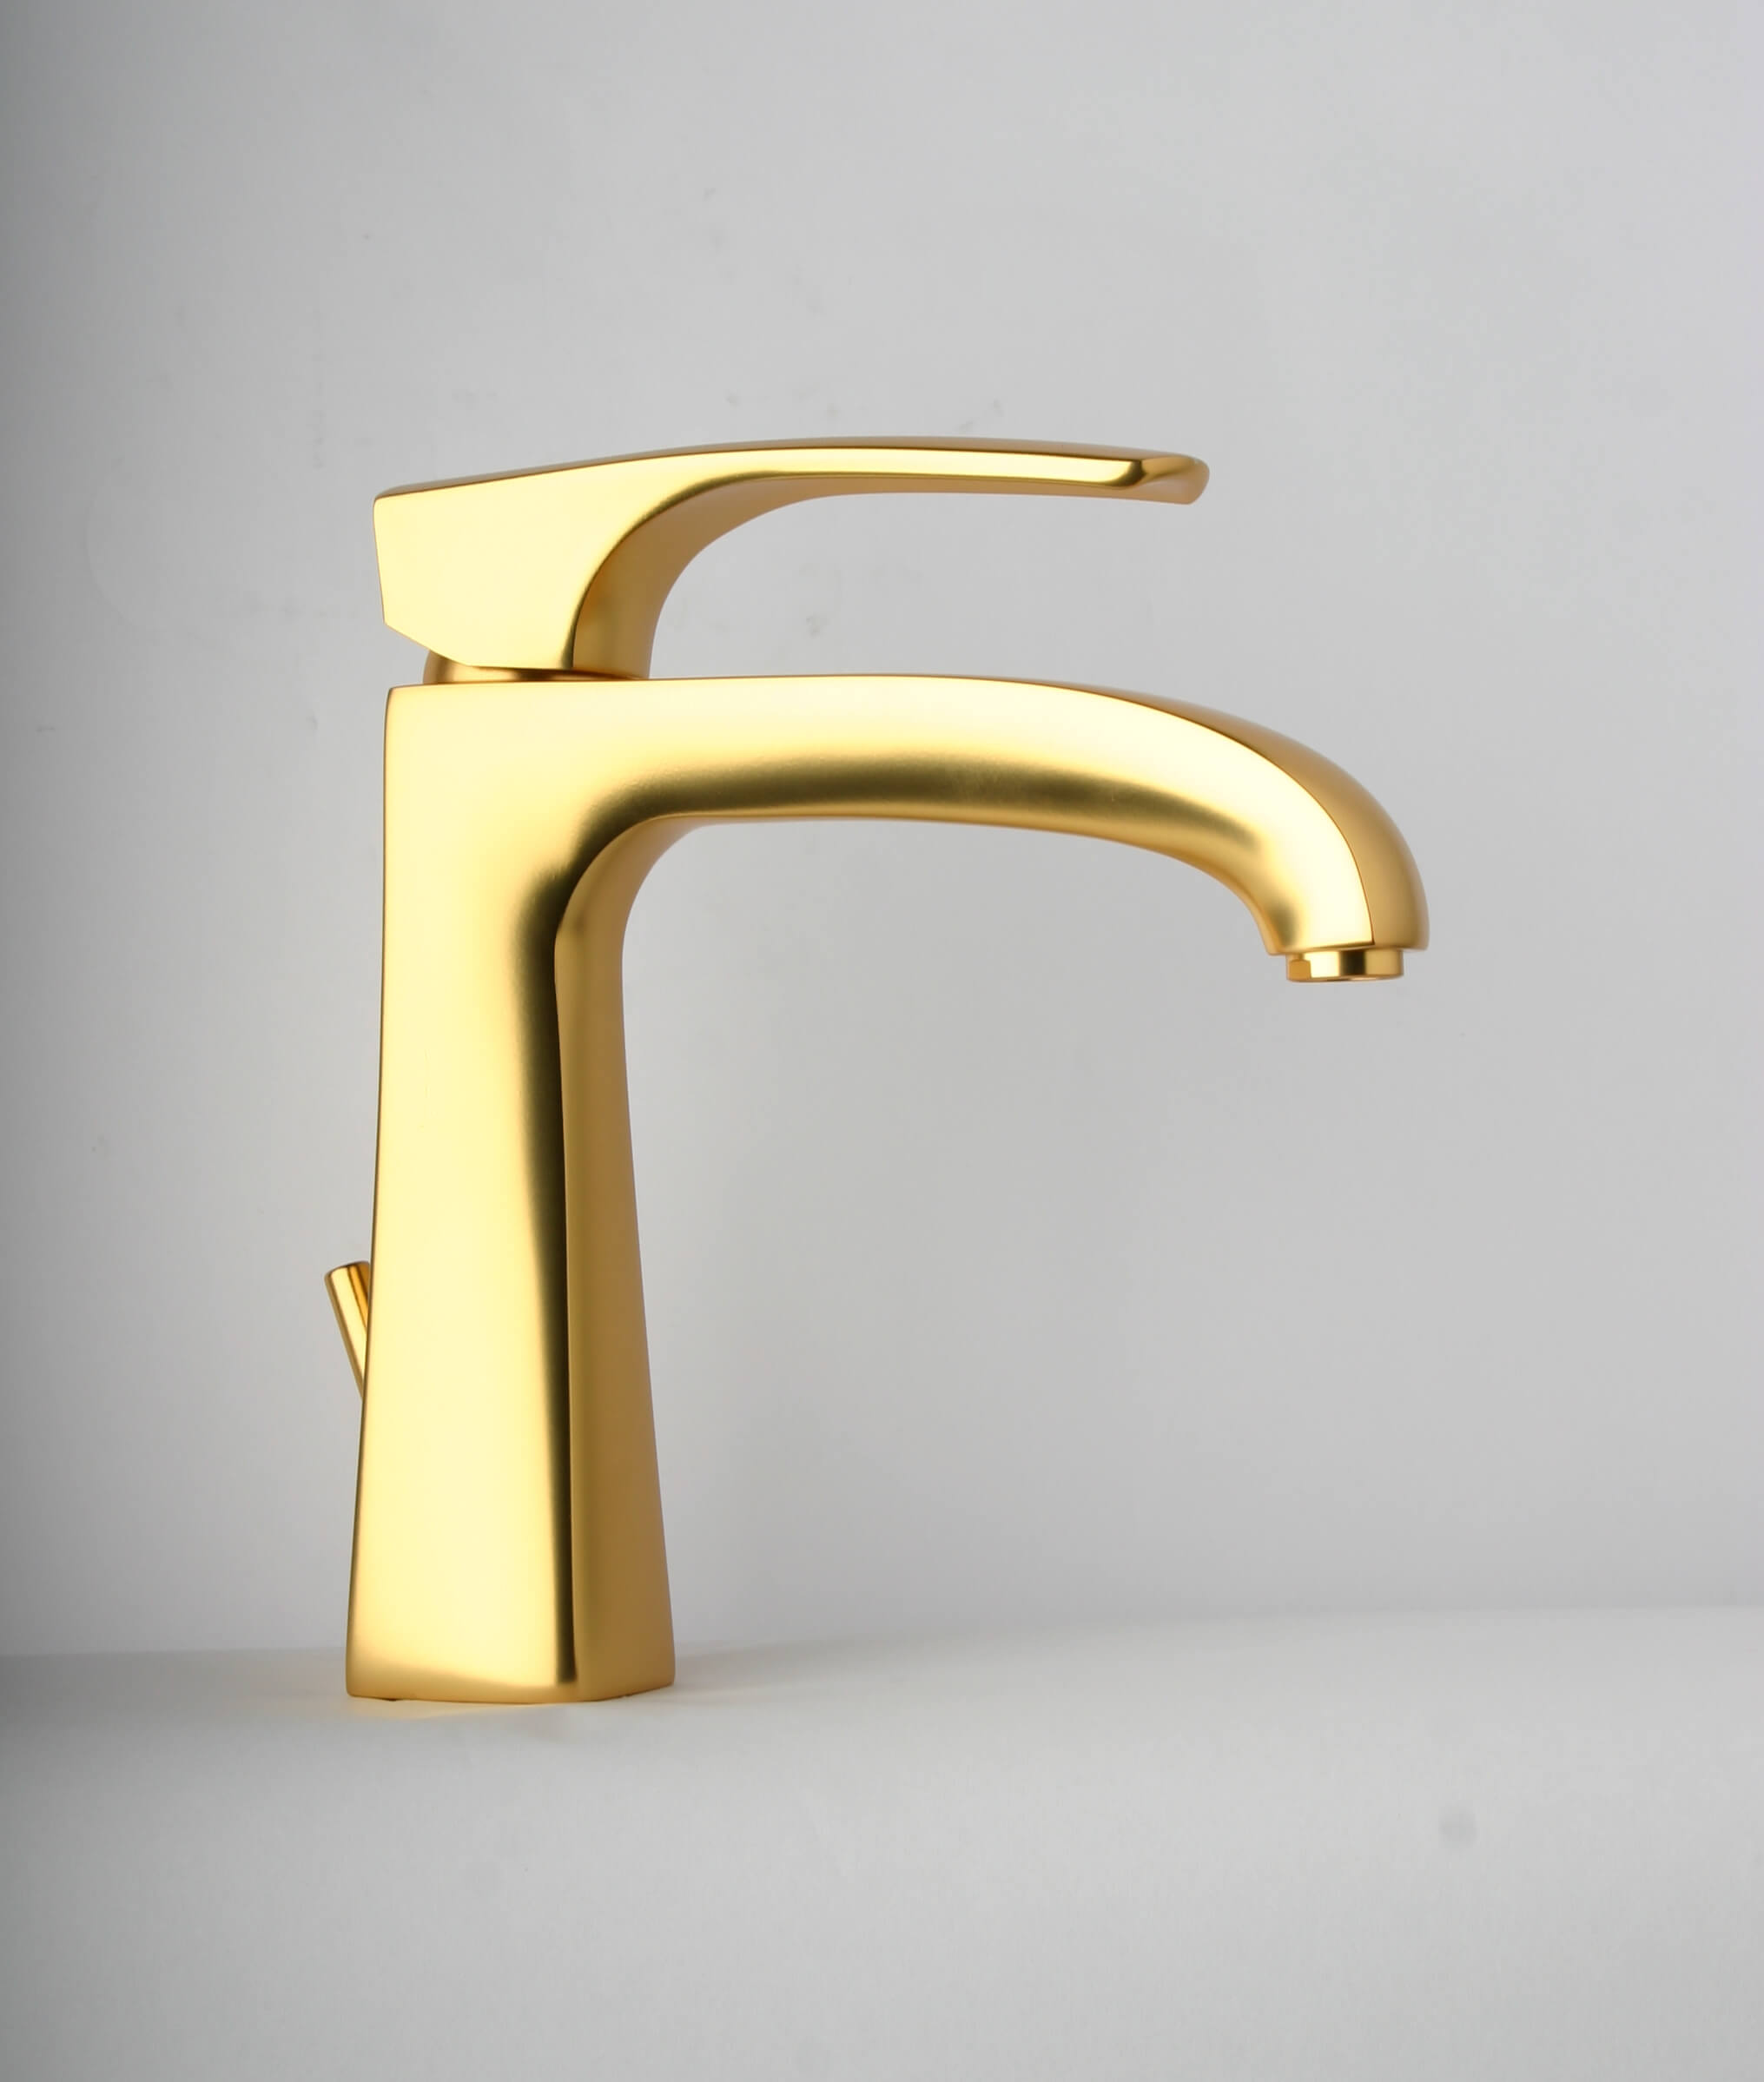 Bathroom Faucets Gold : ... Faucets - Lady 89OK211 Single Control Lavatory Faucet - Satin Gold